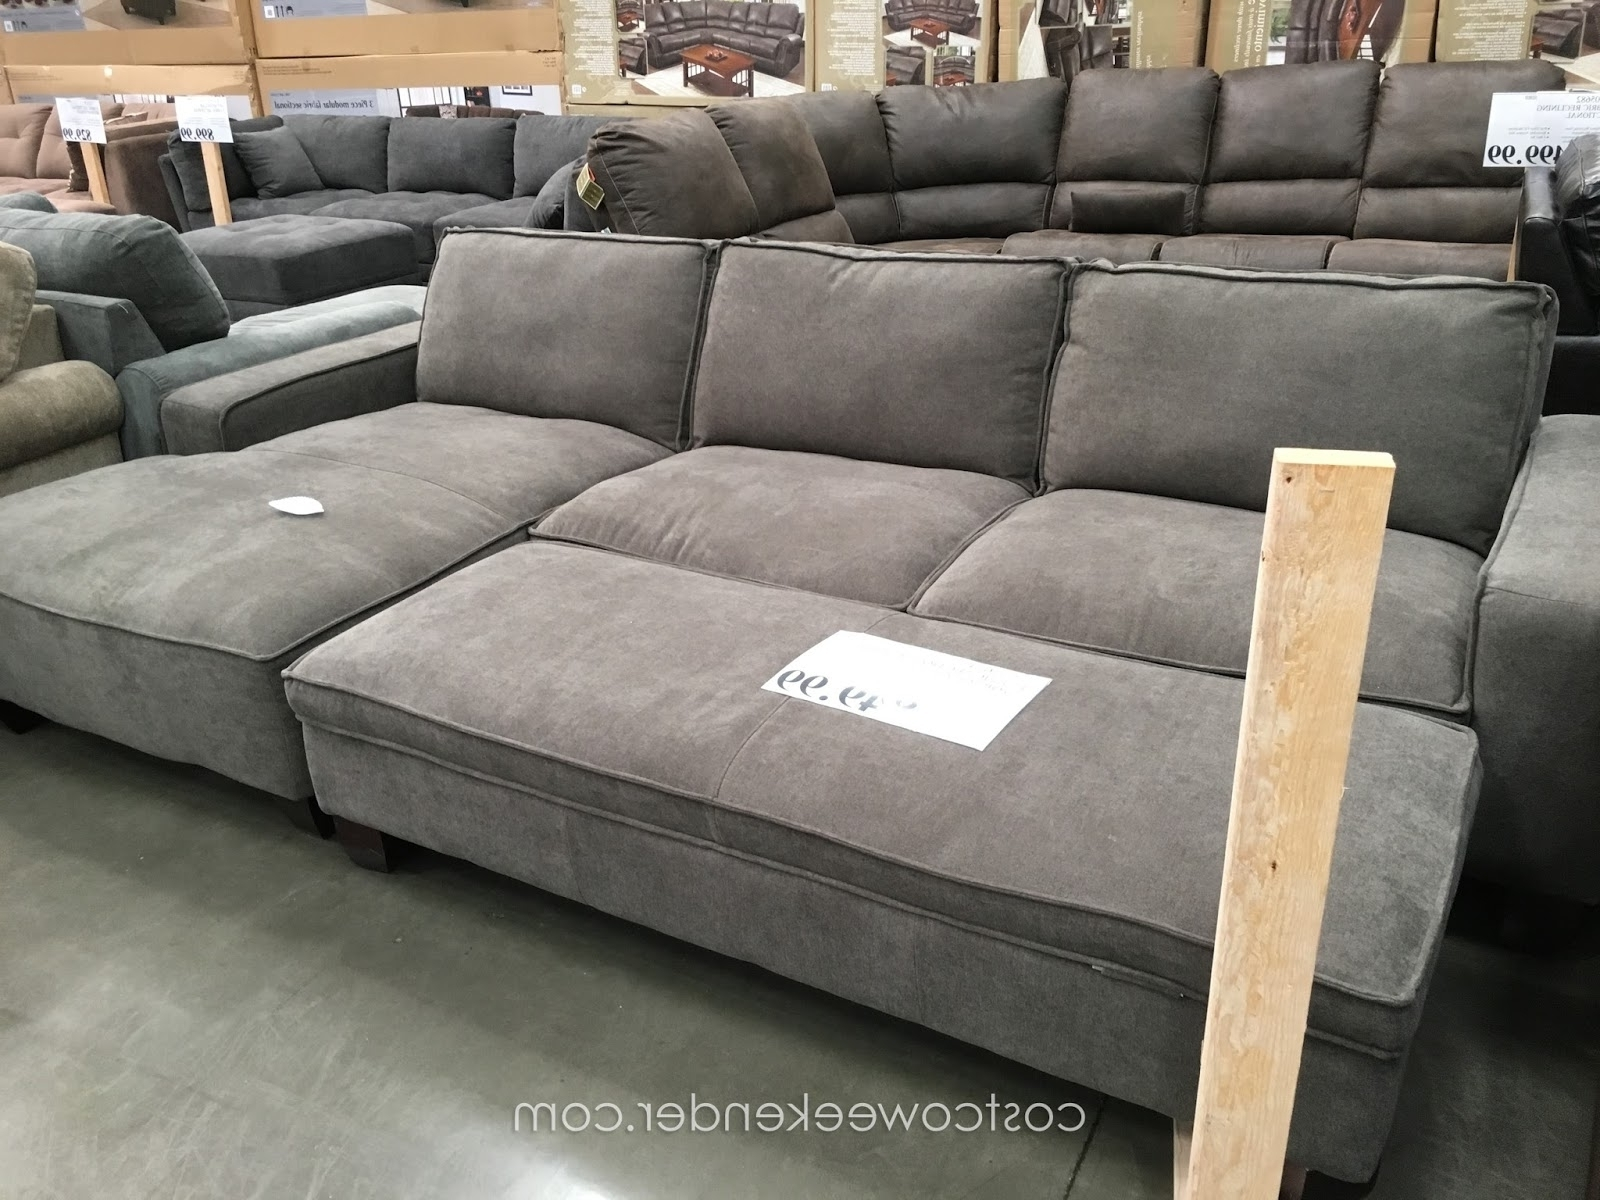 - 20 Best Collection Of Sectional Sofas At Costco